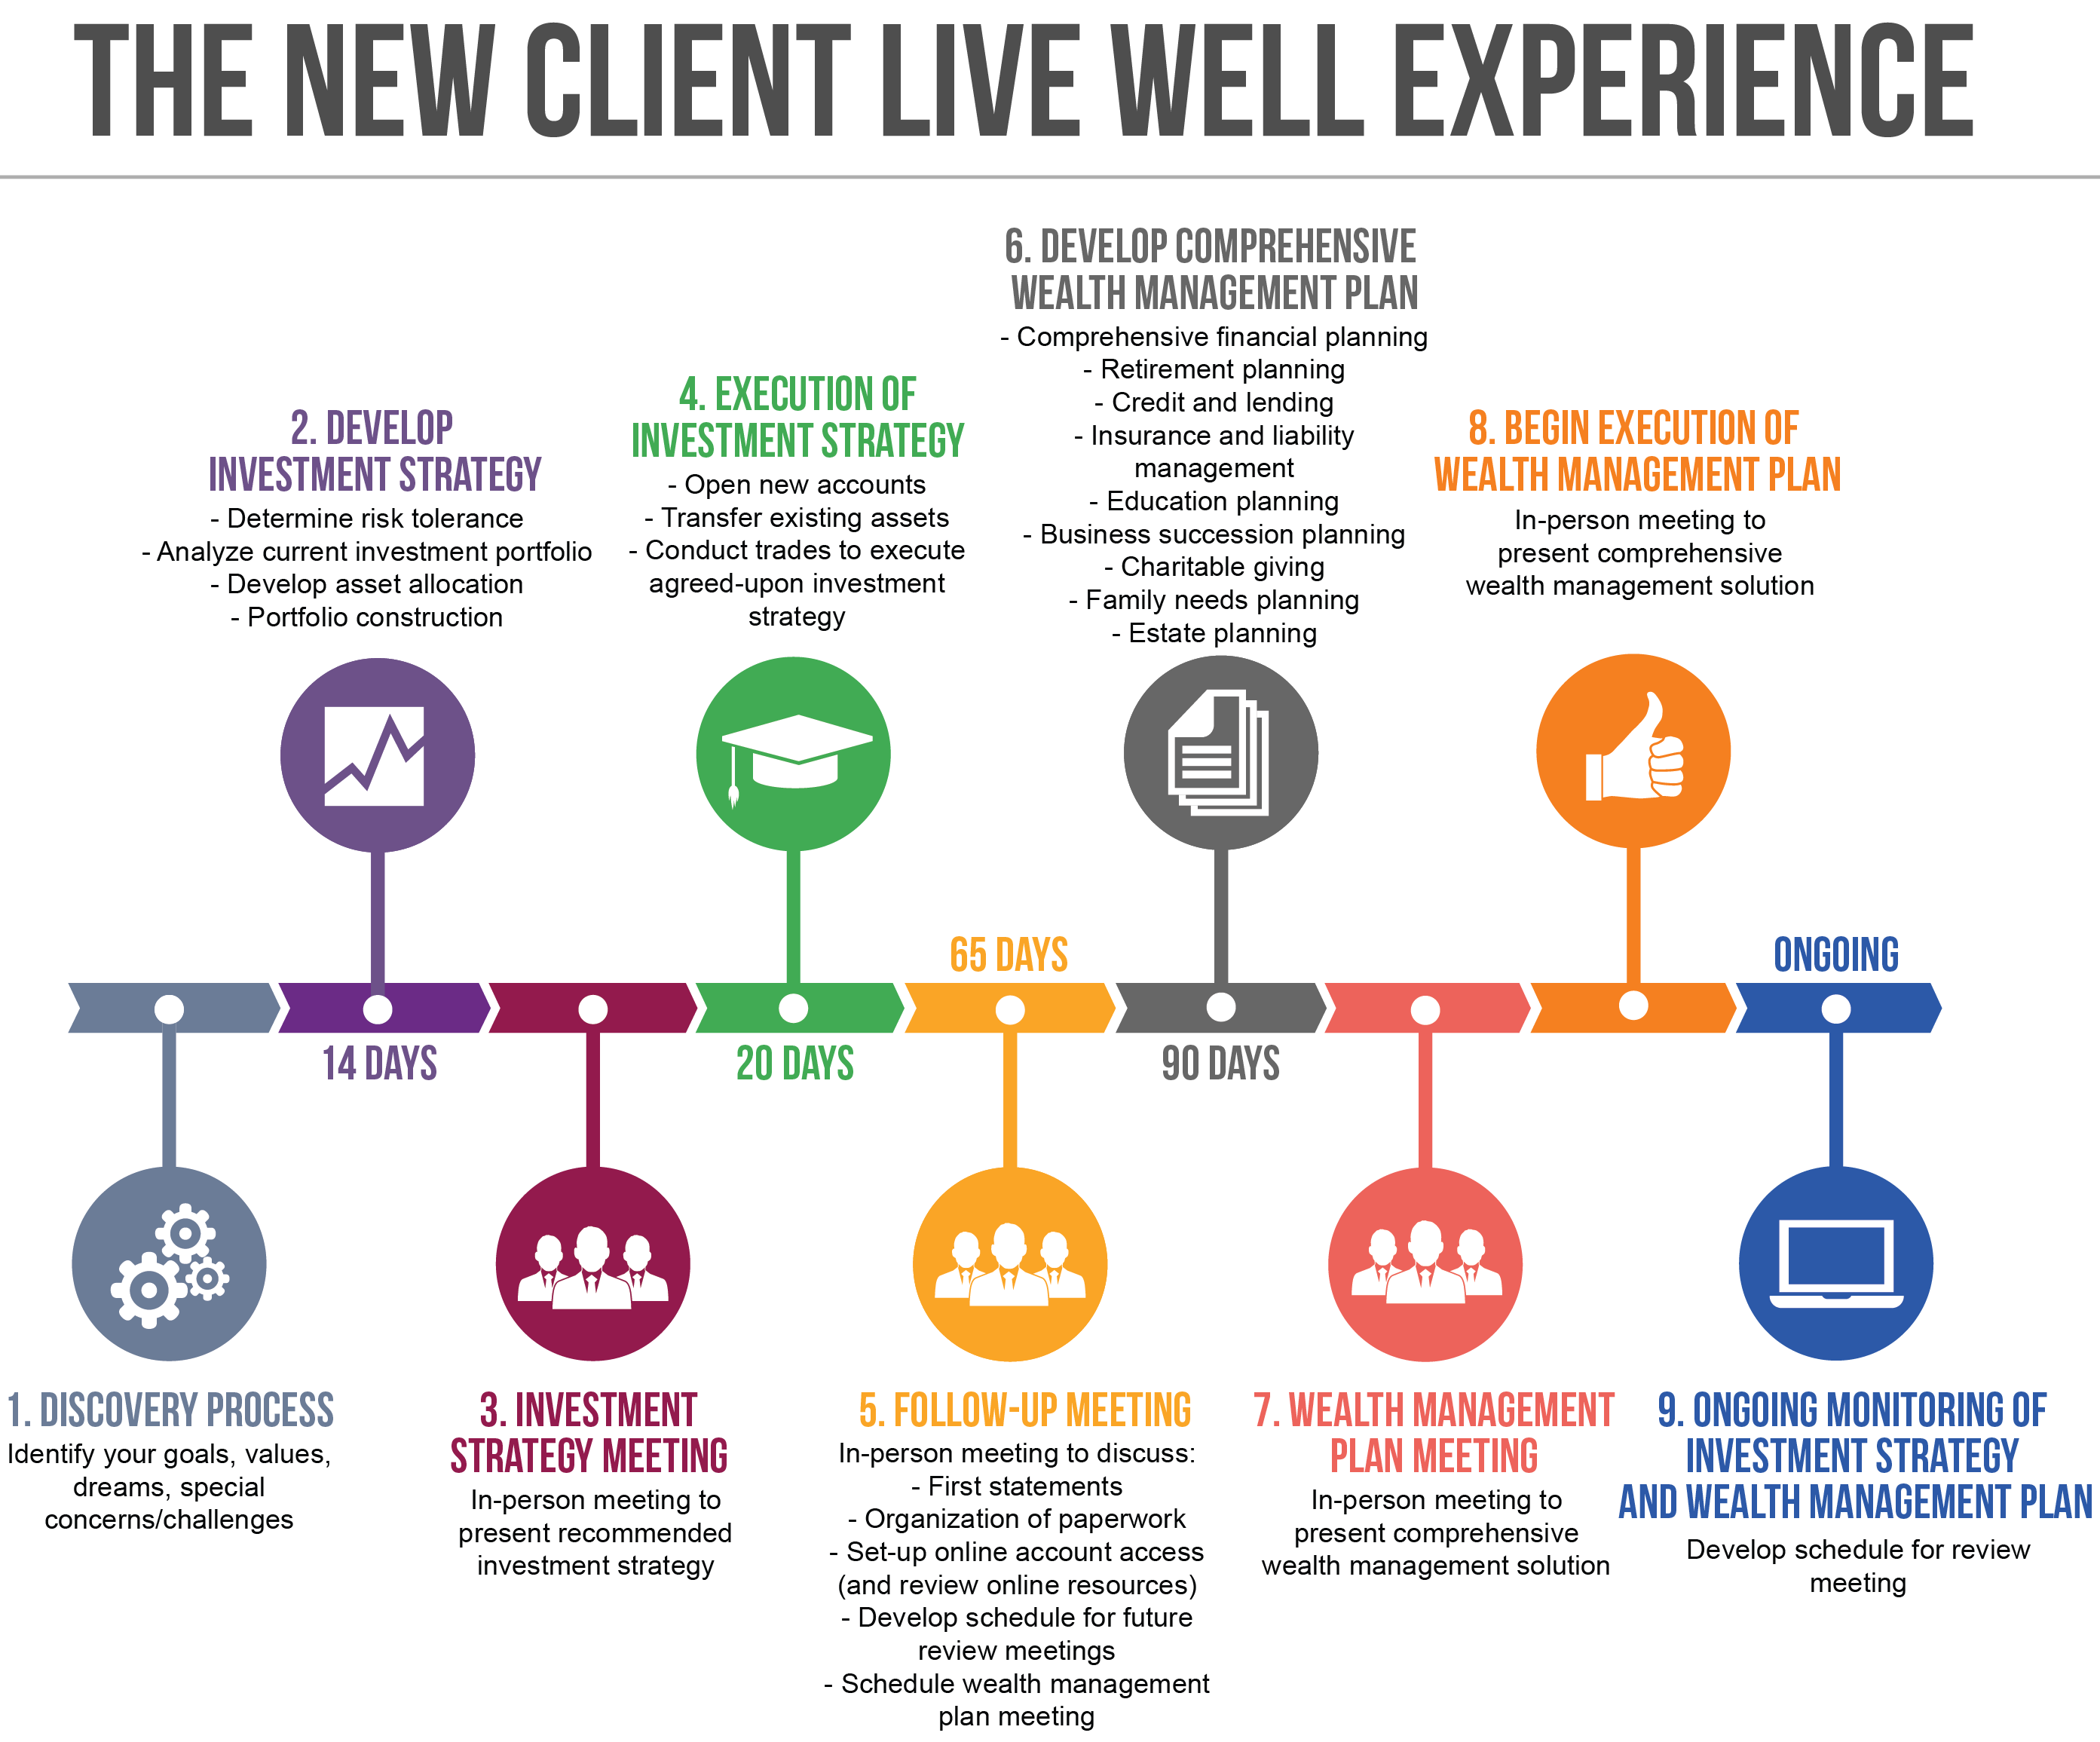 The Client Experience Heirloom Wealth Management